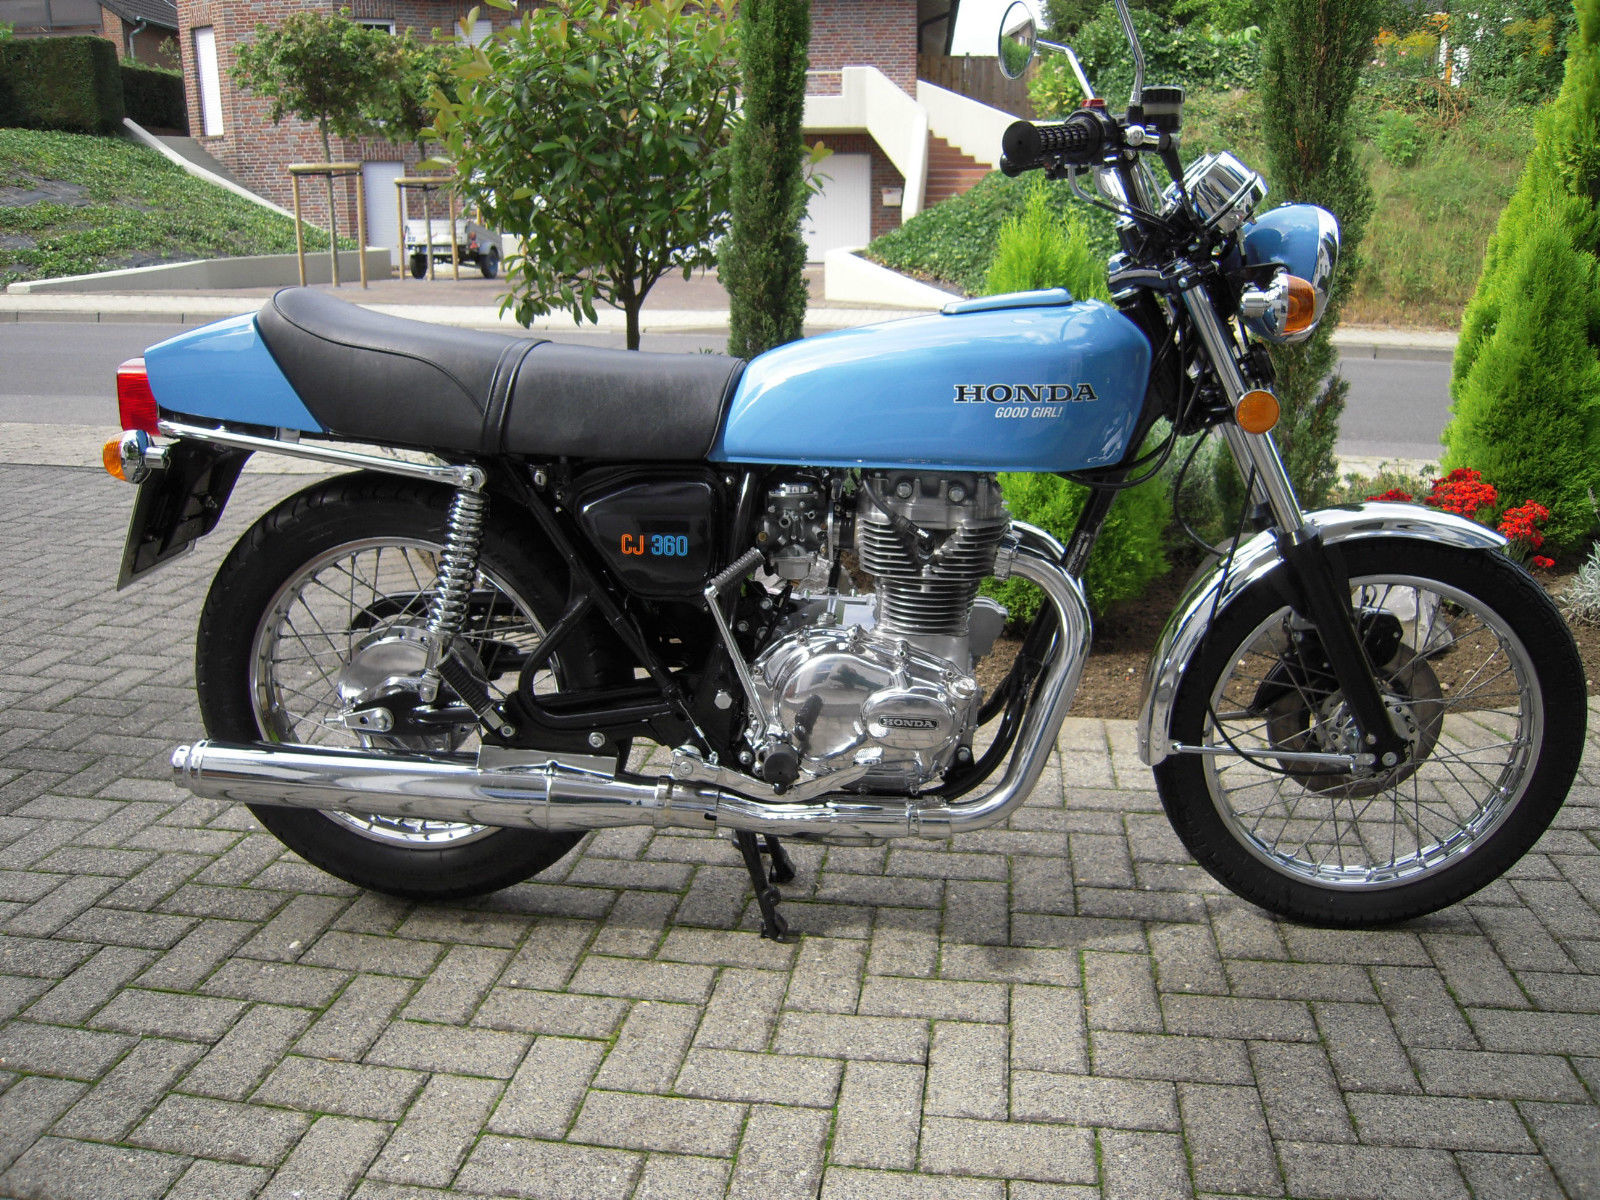 Honda CB360 - 1979 - Right Side View, Exhaust Muffler, Kick Start, Stand and Gas Tank.